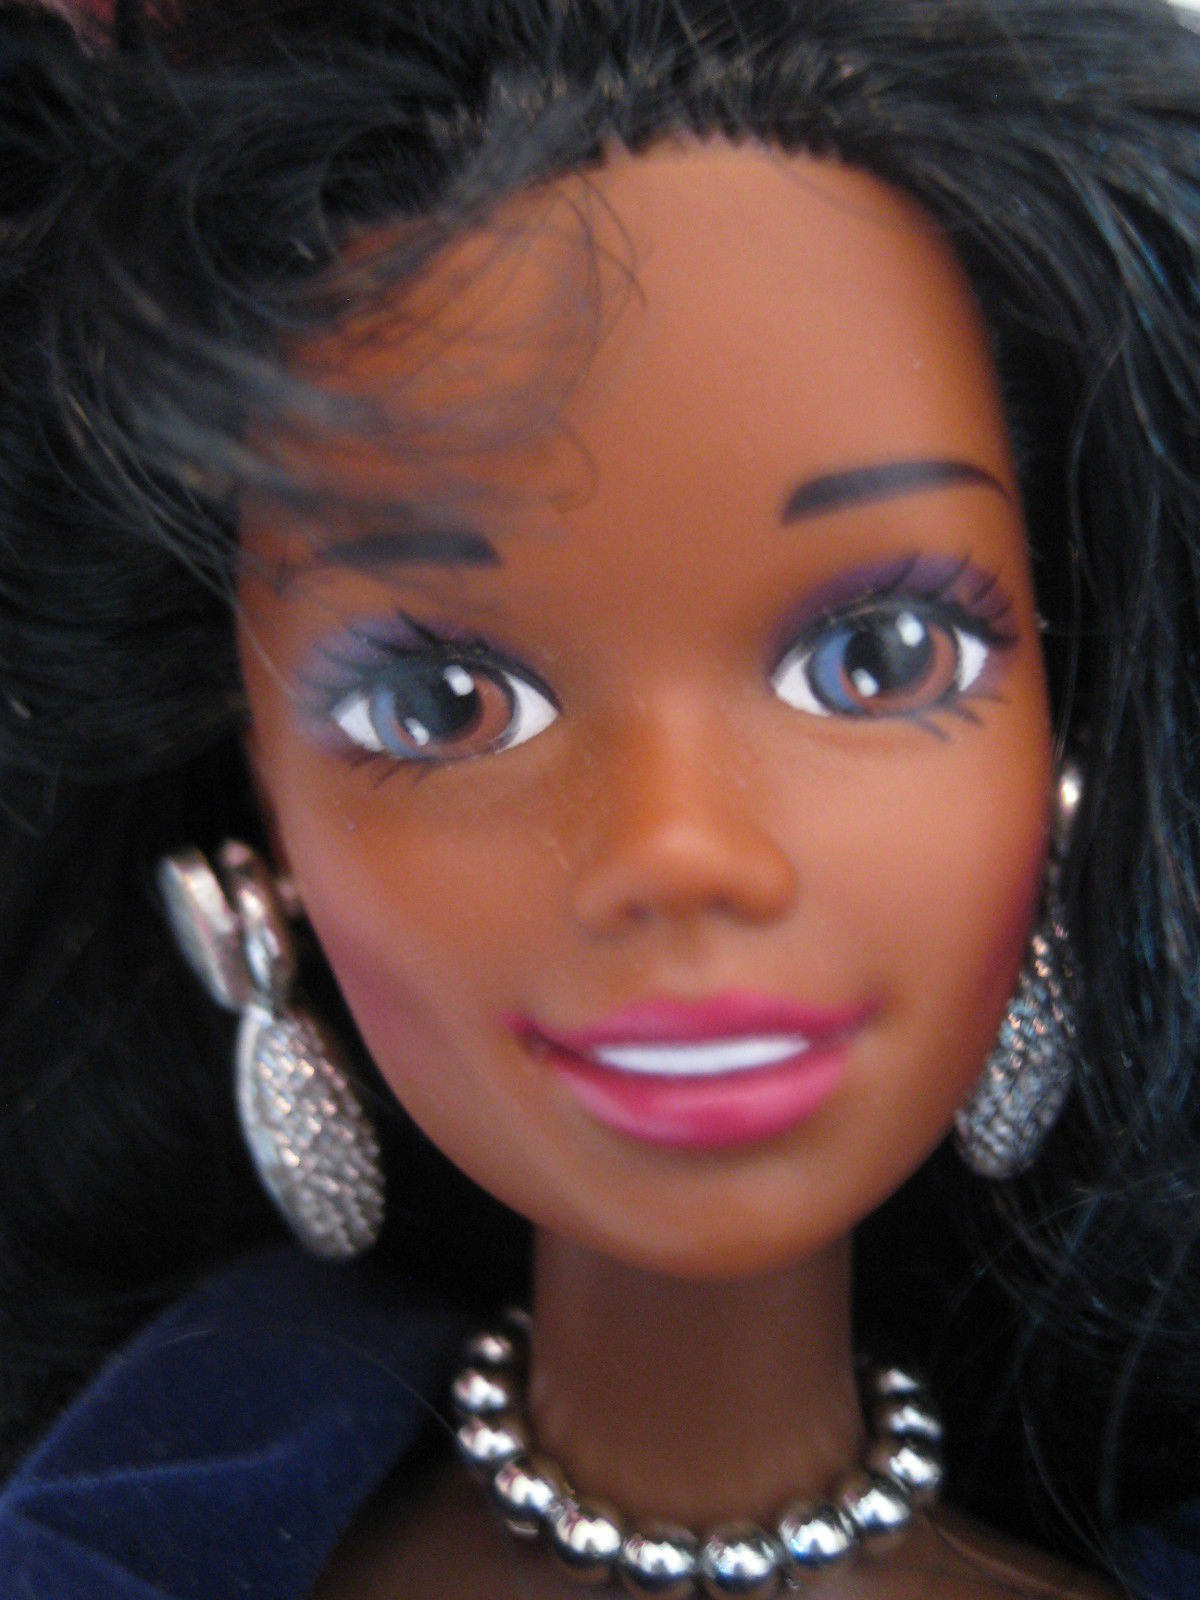 Girl that looks like barbie